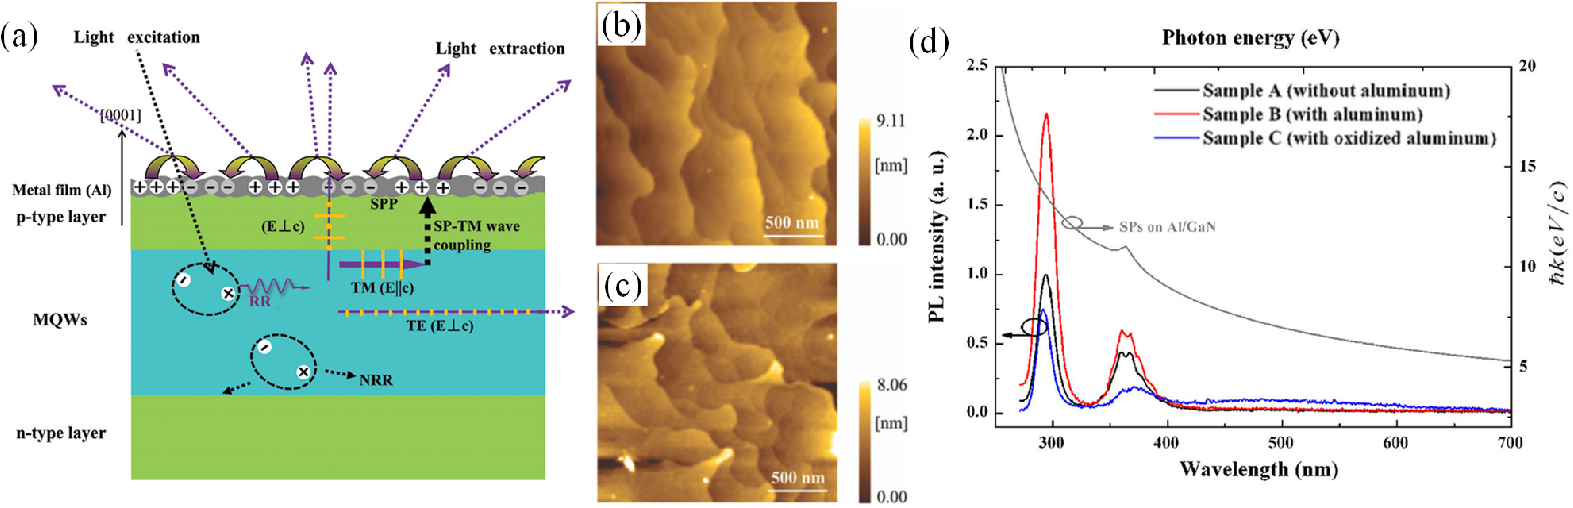 Review of nanophotonics approaches using nanostructures and